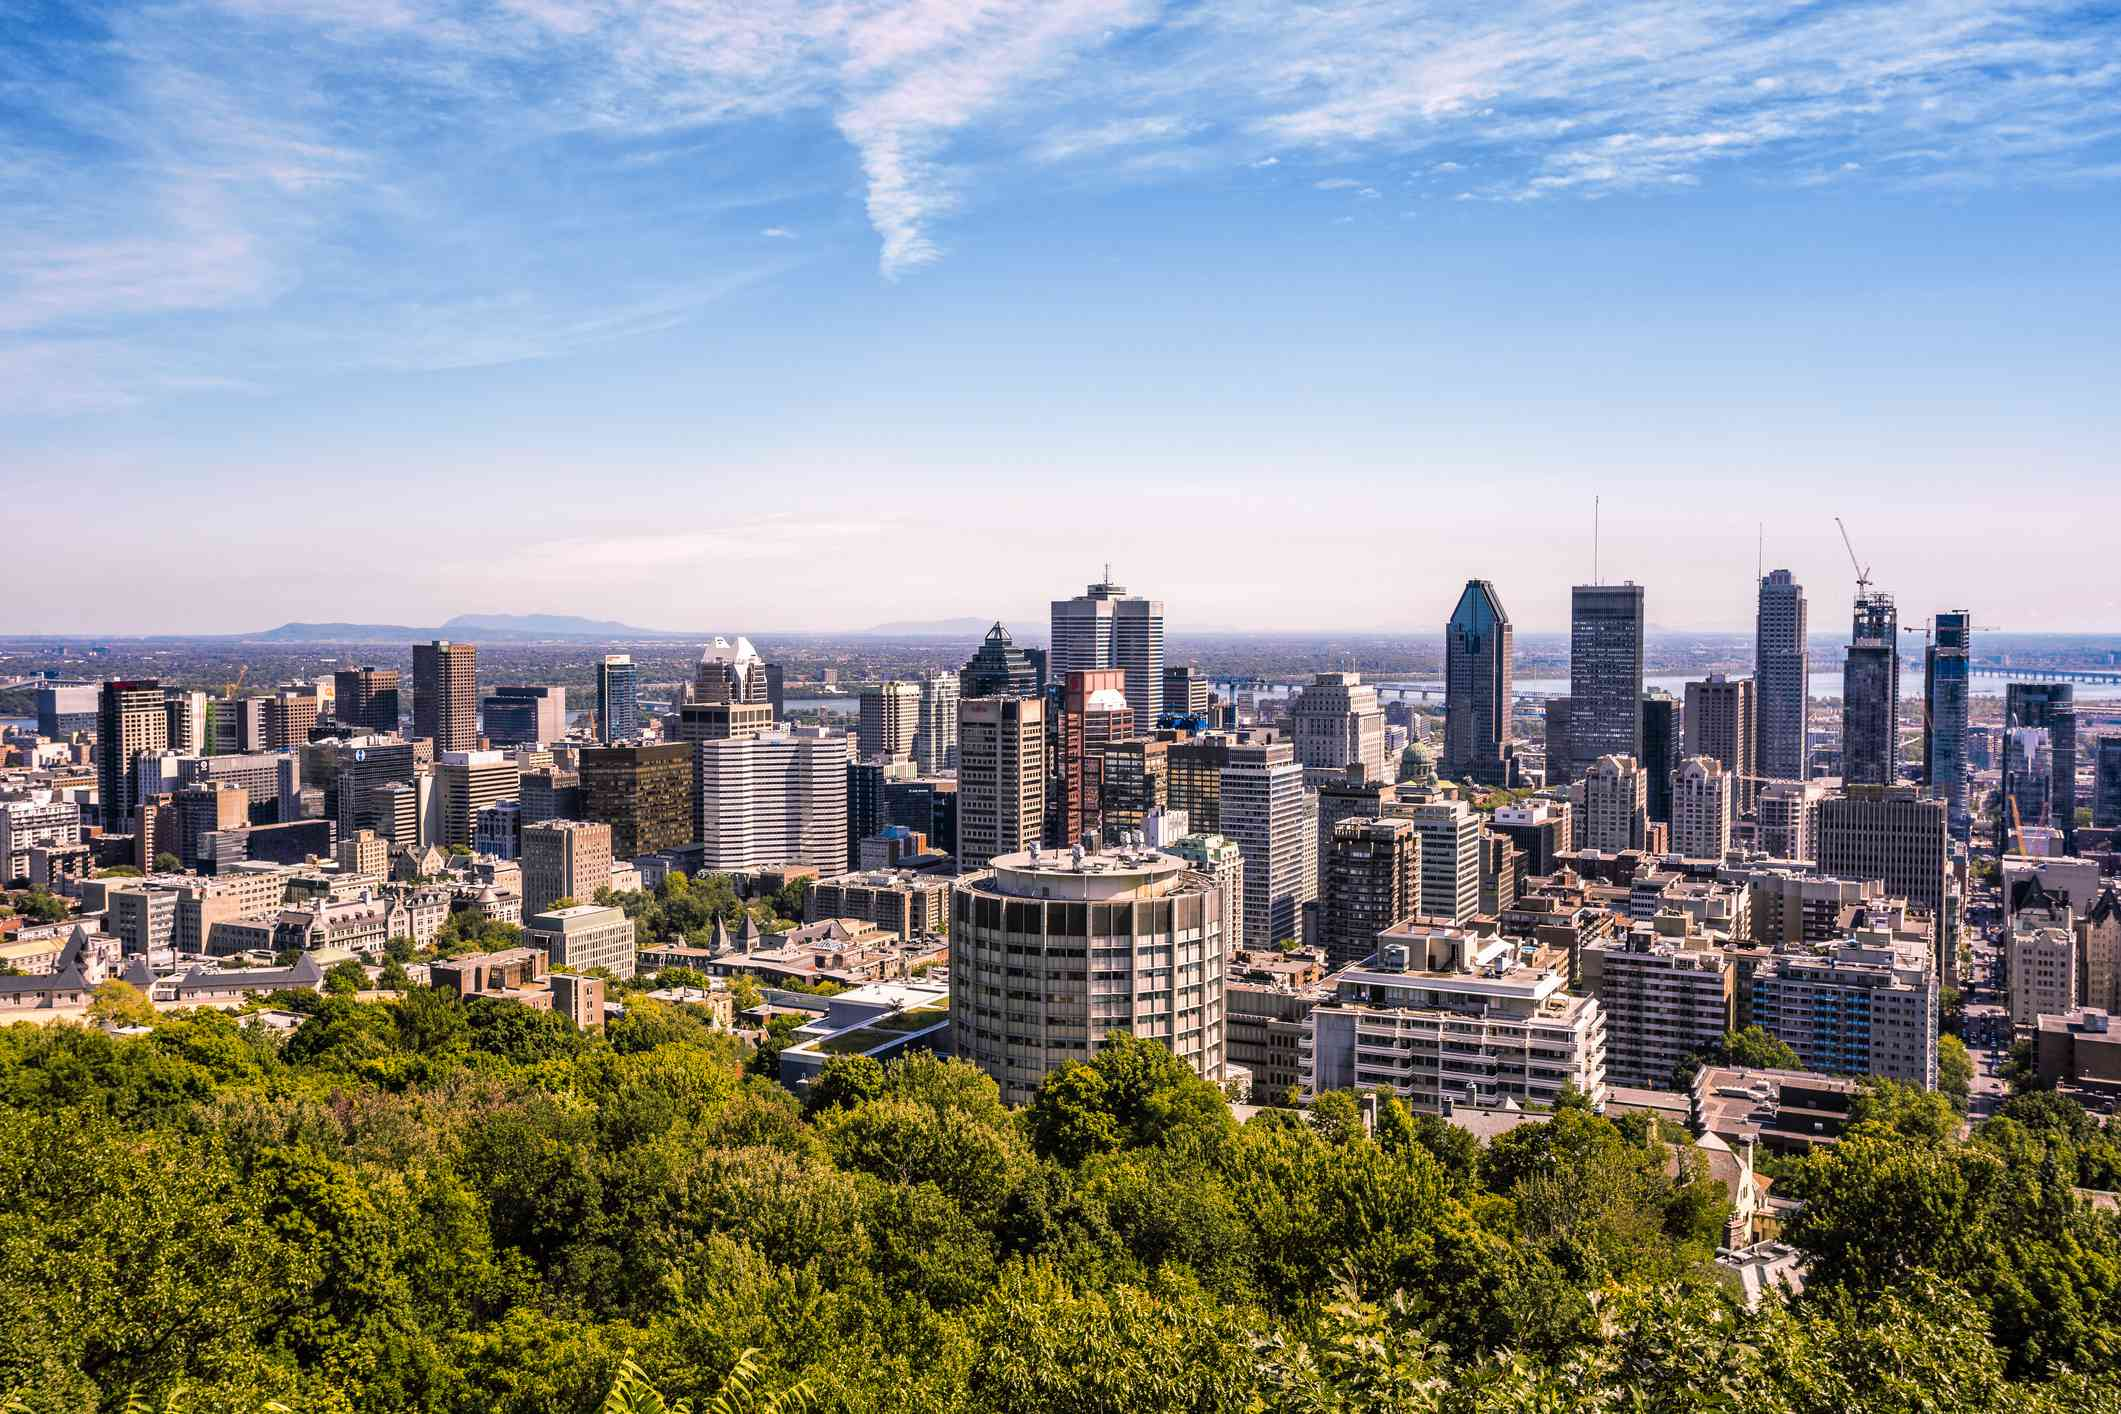 view of downtown Montreal, Canada's high rise buildings, lush green trees, and blue sky with light white clouds taken from Mount Royal